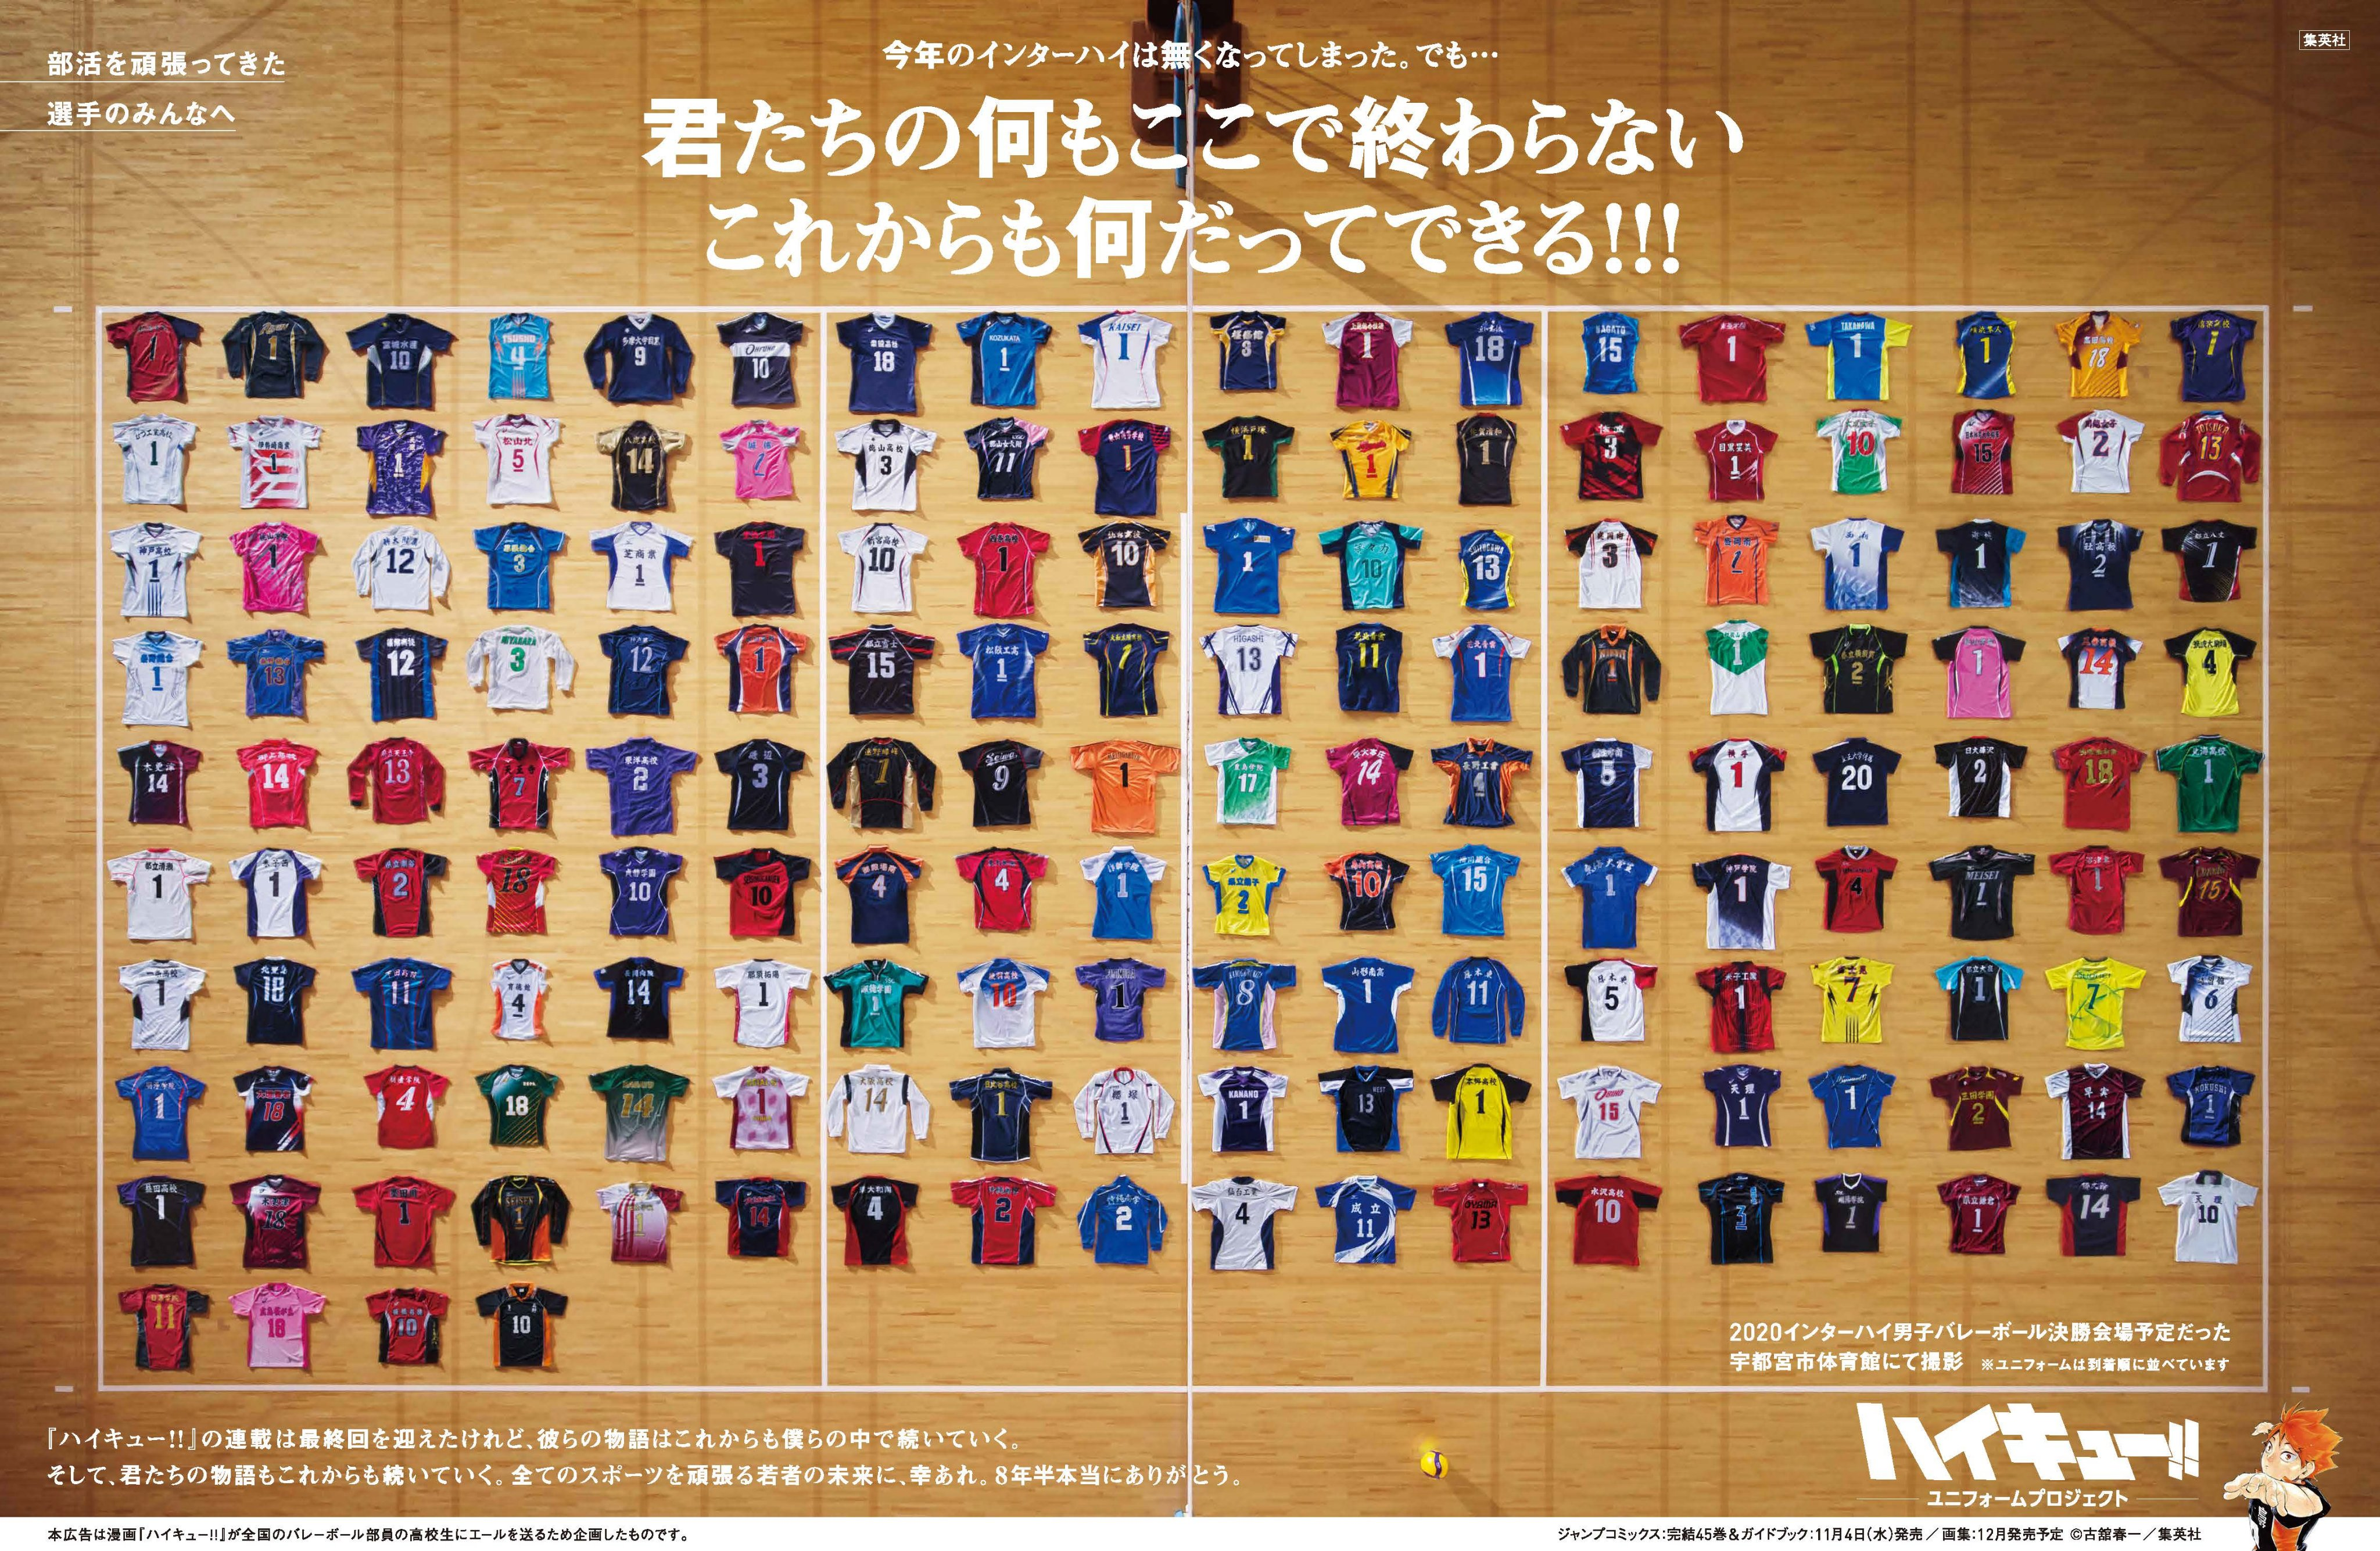 Haikyuu!! Releases Spread of Every Uniform in the Series